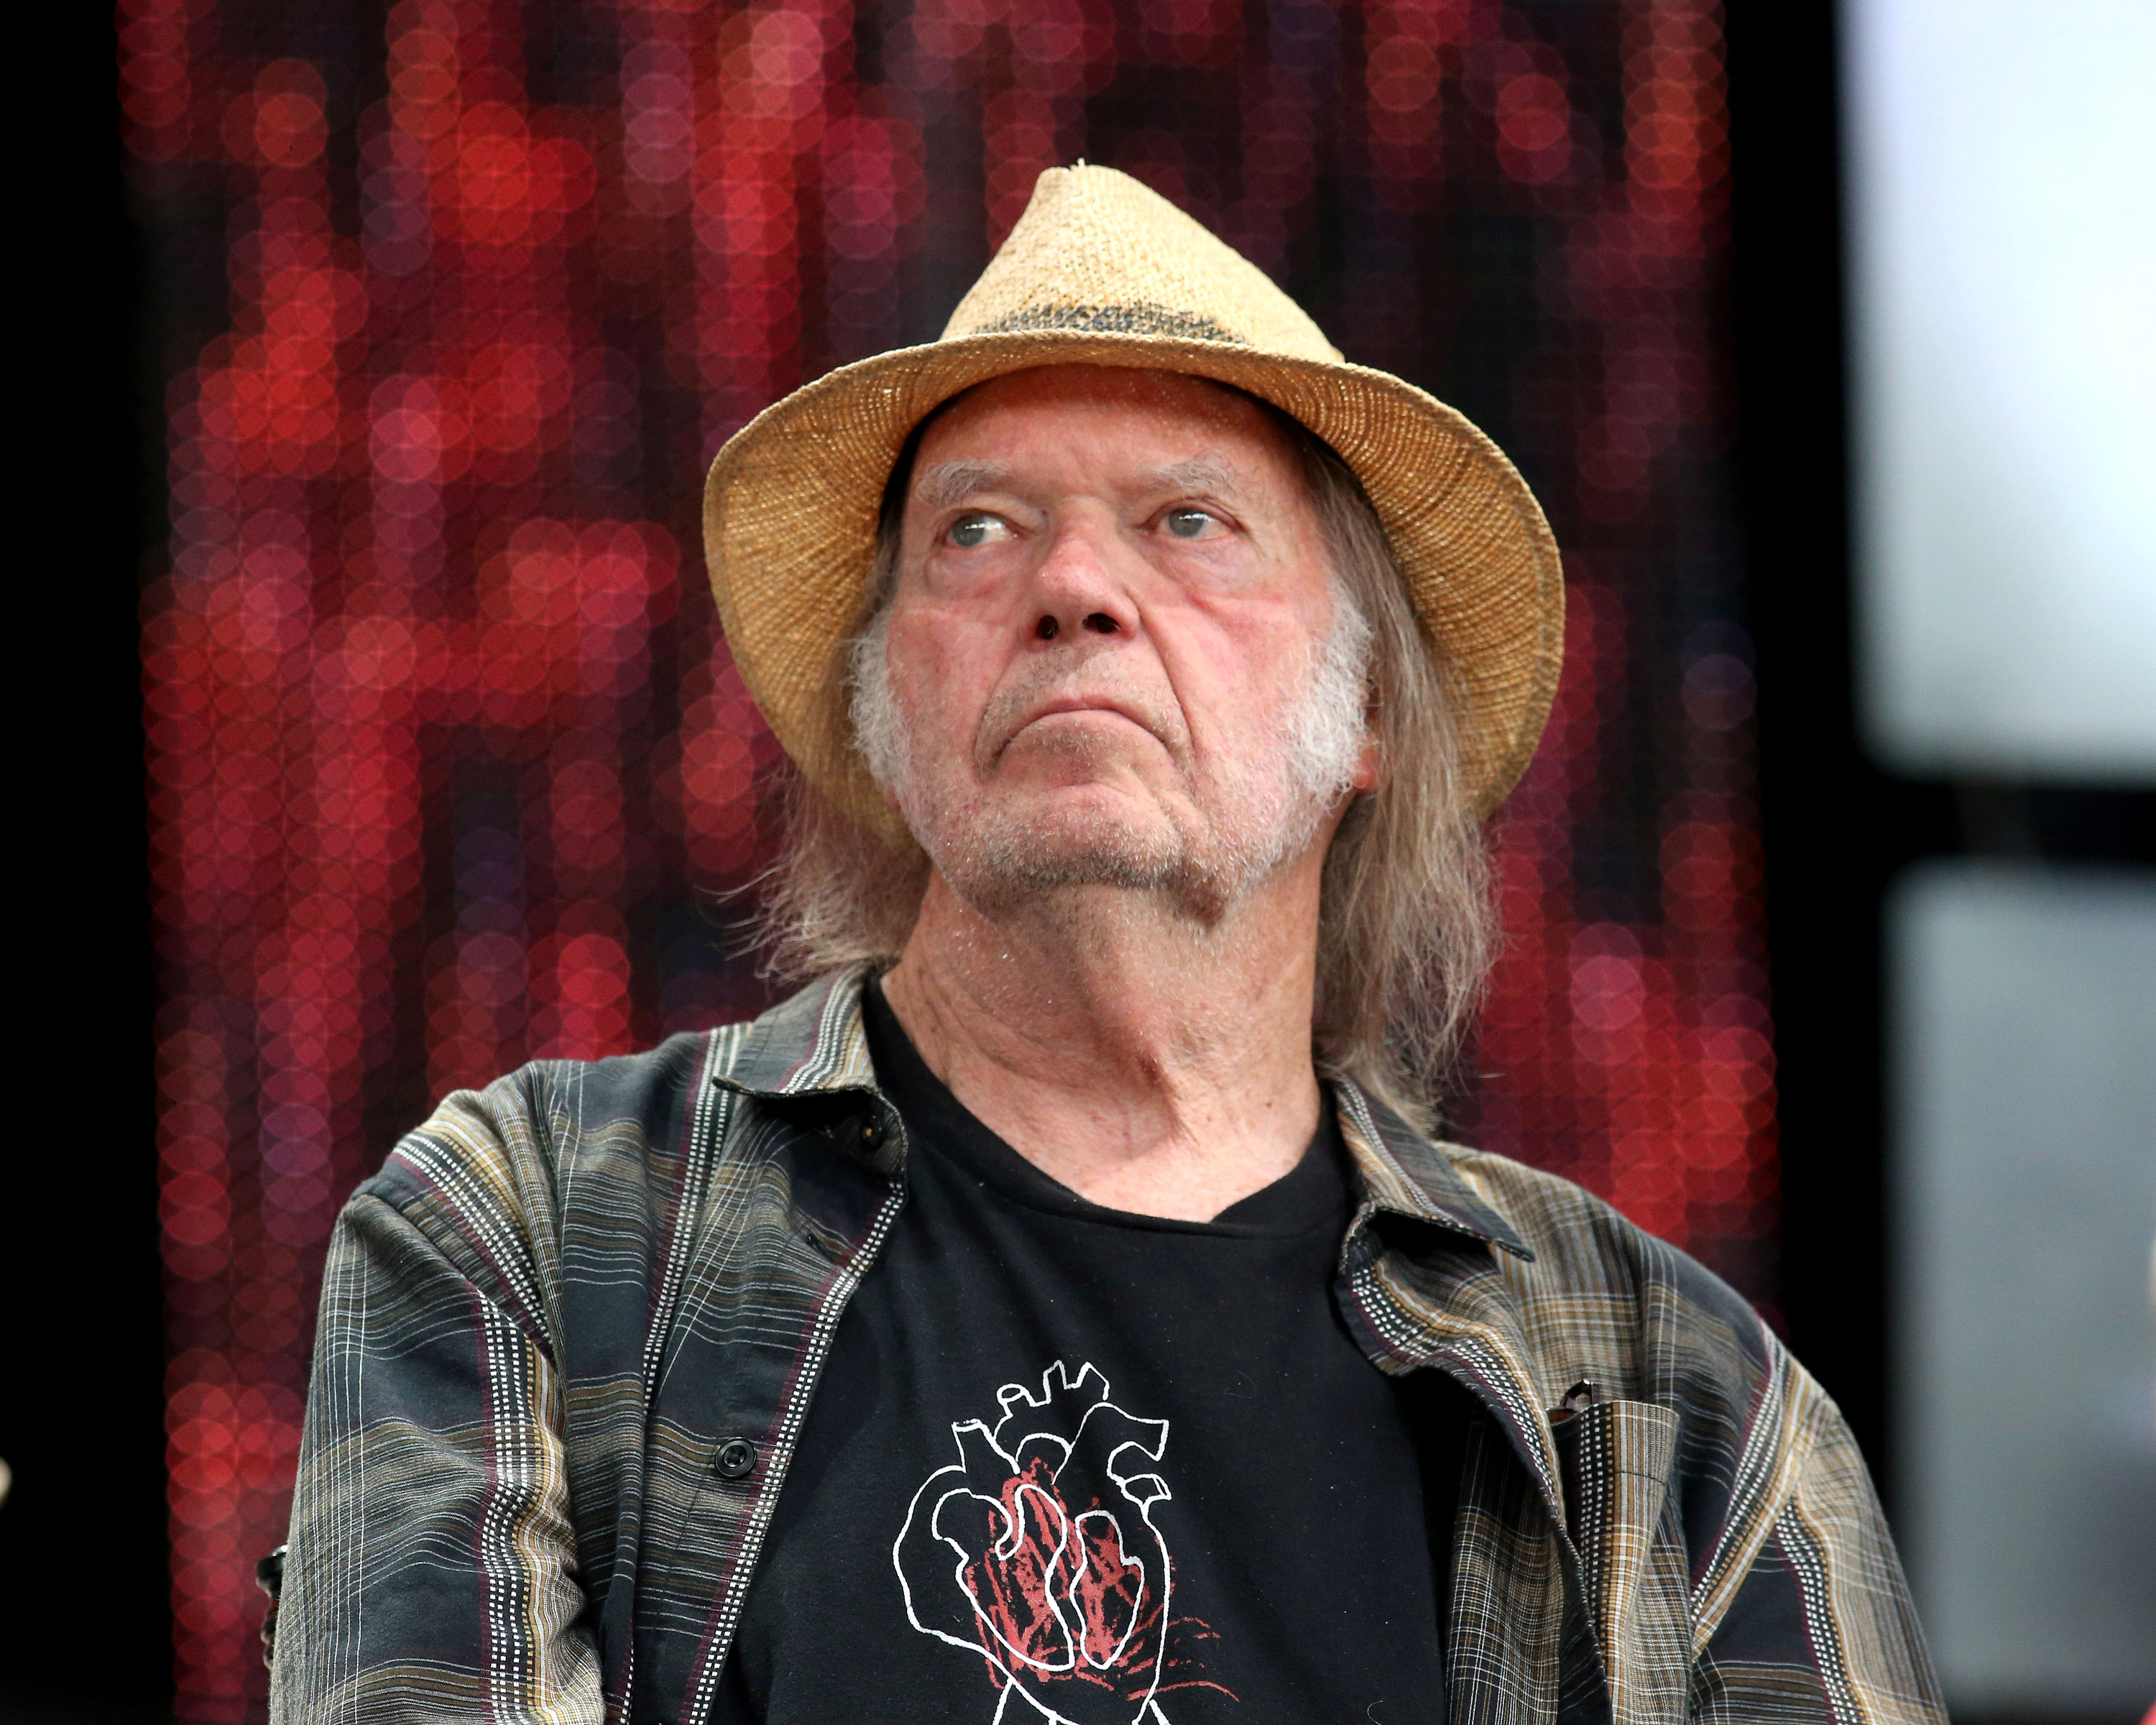 Neil Young takes Trump's reelection campaign to court for copyright infringement